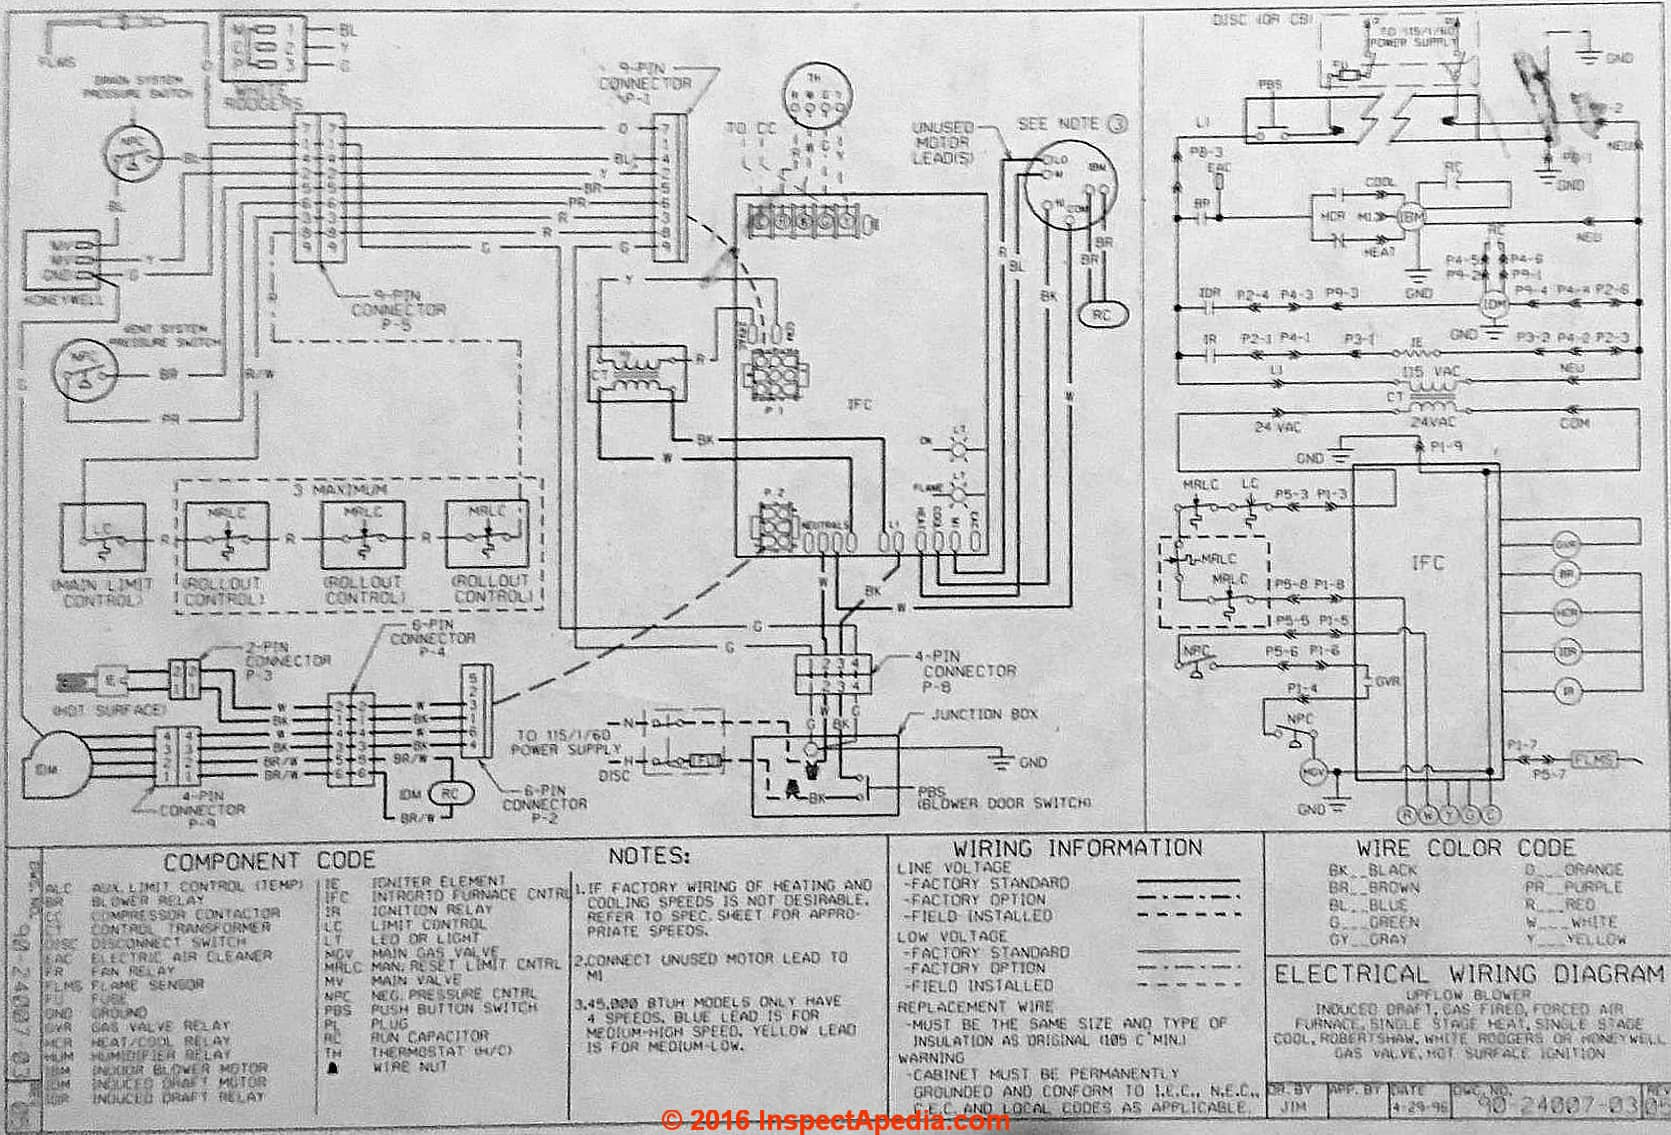 air conditioner   heat pump faqs Gas Unit Heater Wiring Diagram for Basic Marley Wall Heater Wiring Diagram